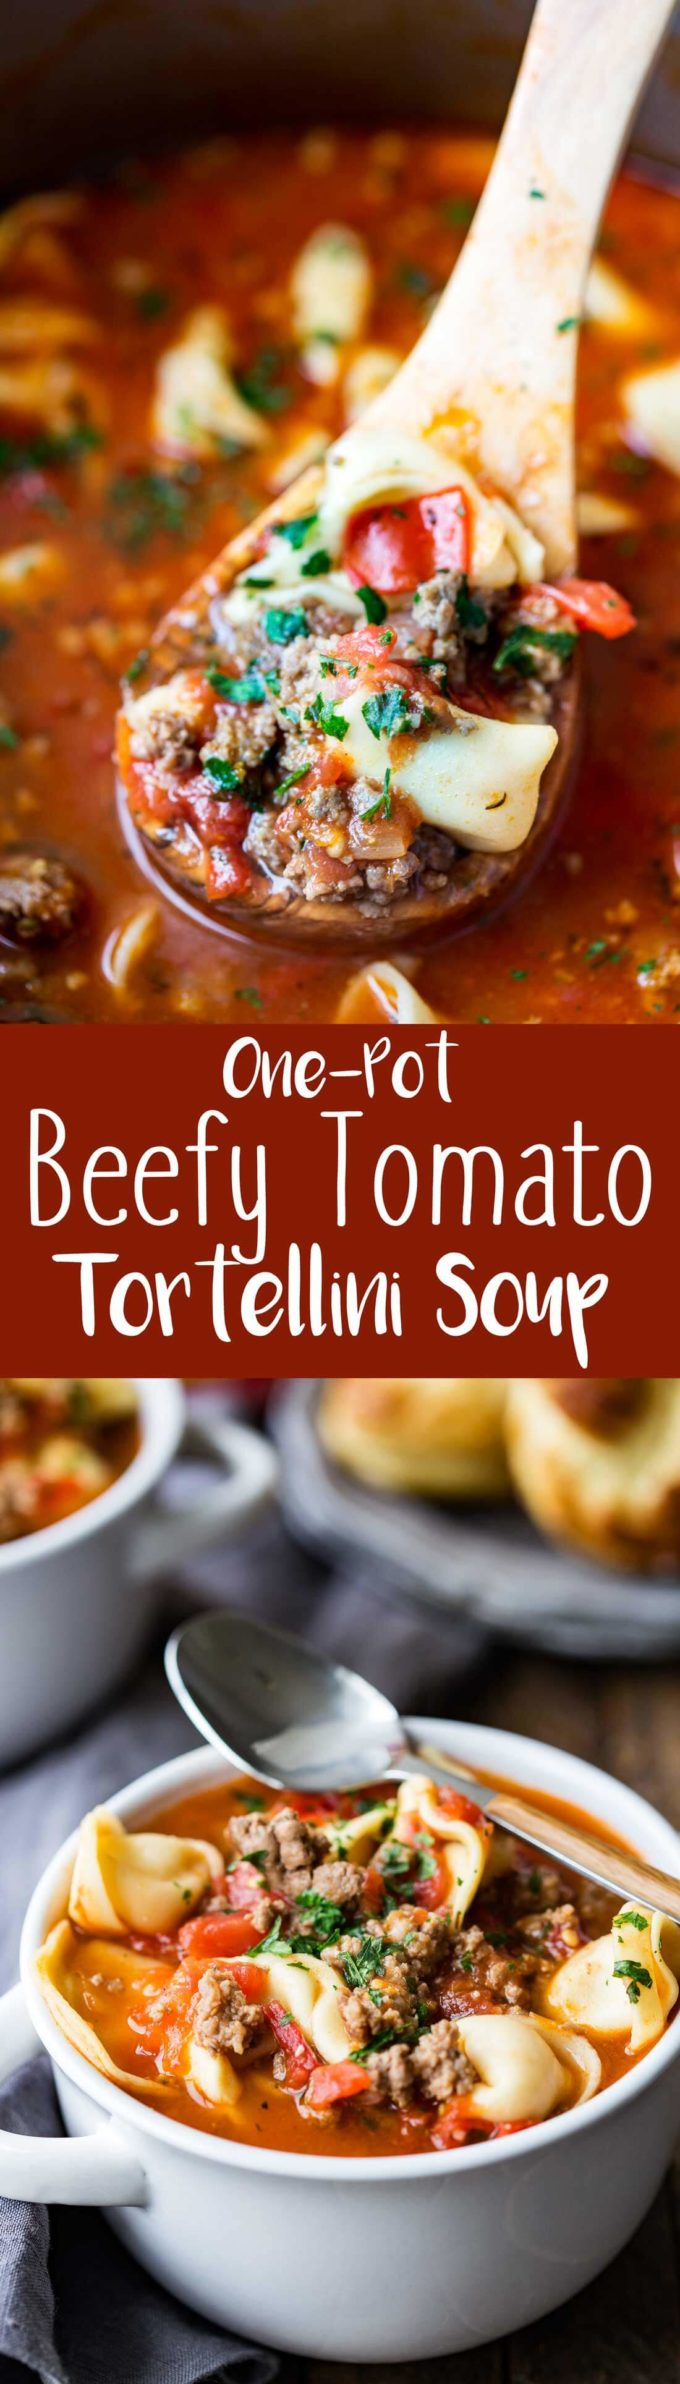 Hearty, beefy, tomato tortellini soup is the ideal comfort soup this winter!